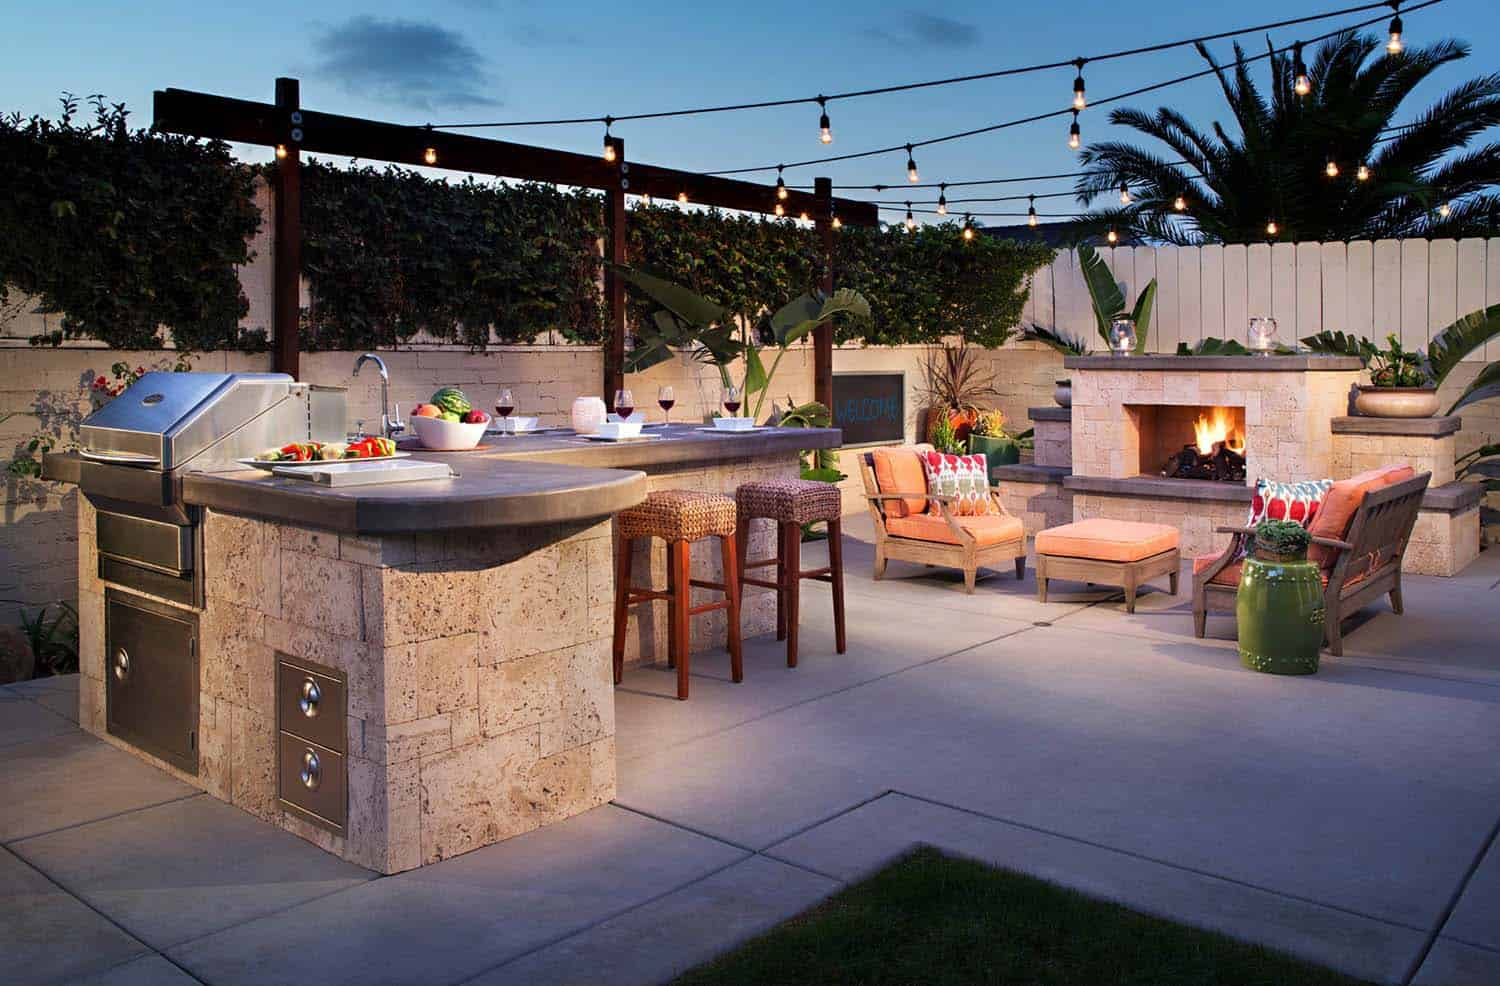 35 Brilliant and inspiring patio ideas for outdoor living ... on Small Backyard Entertainment Area Ideas id=38894